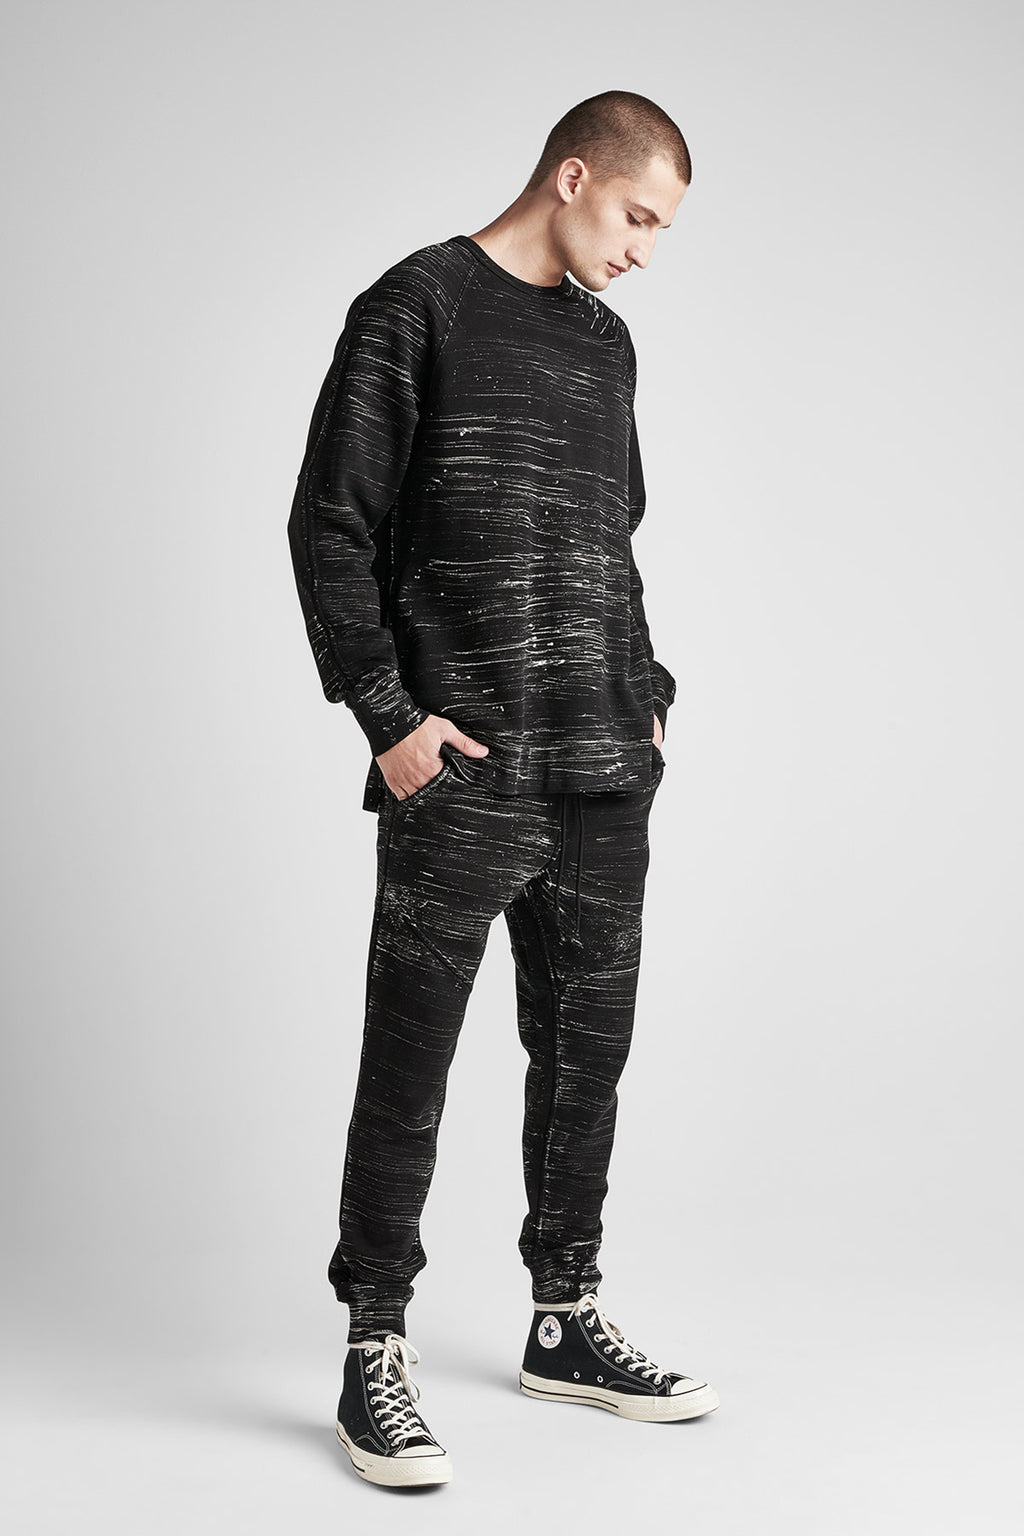 PULLOVER CREWNECK SWEATER - BLACK MARBLE - Image 2